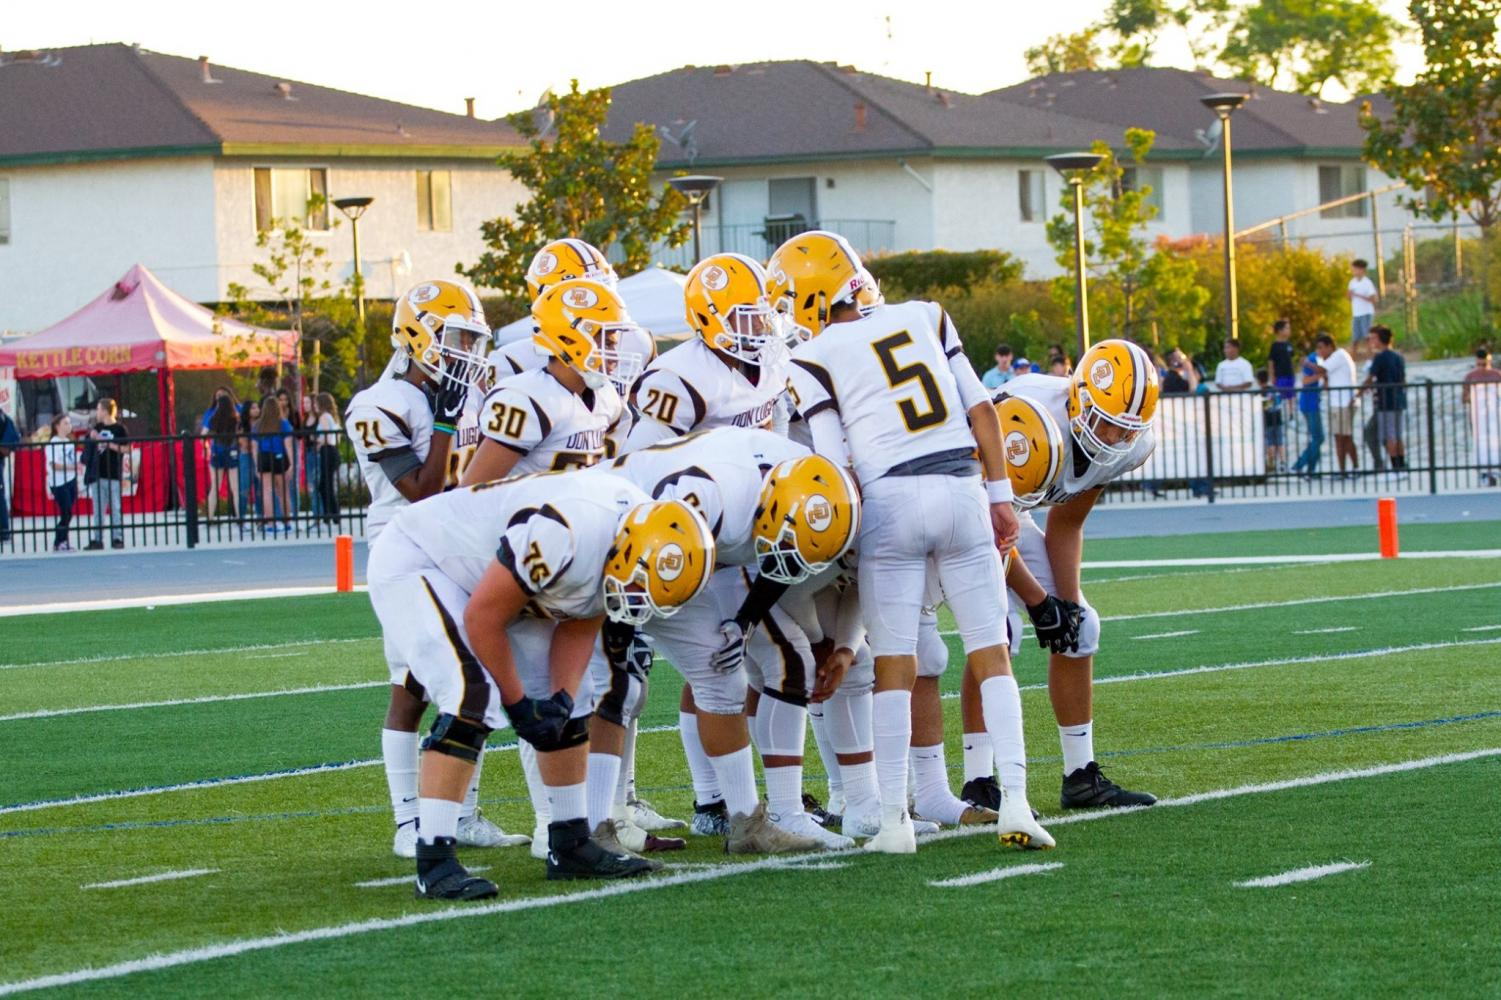 Photo courtesy of Don Lugo Football.